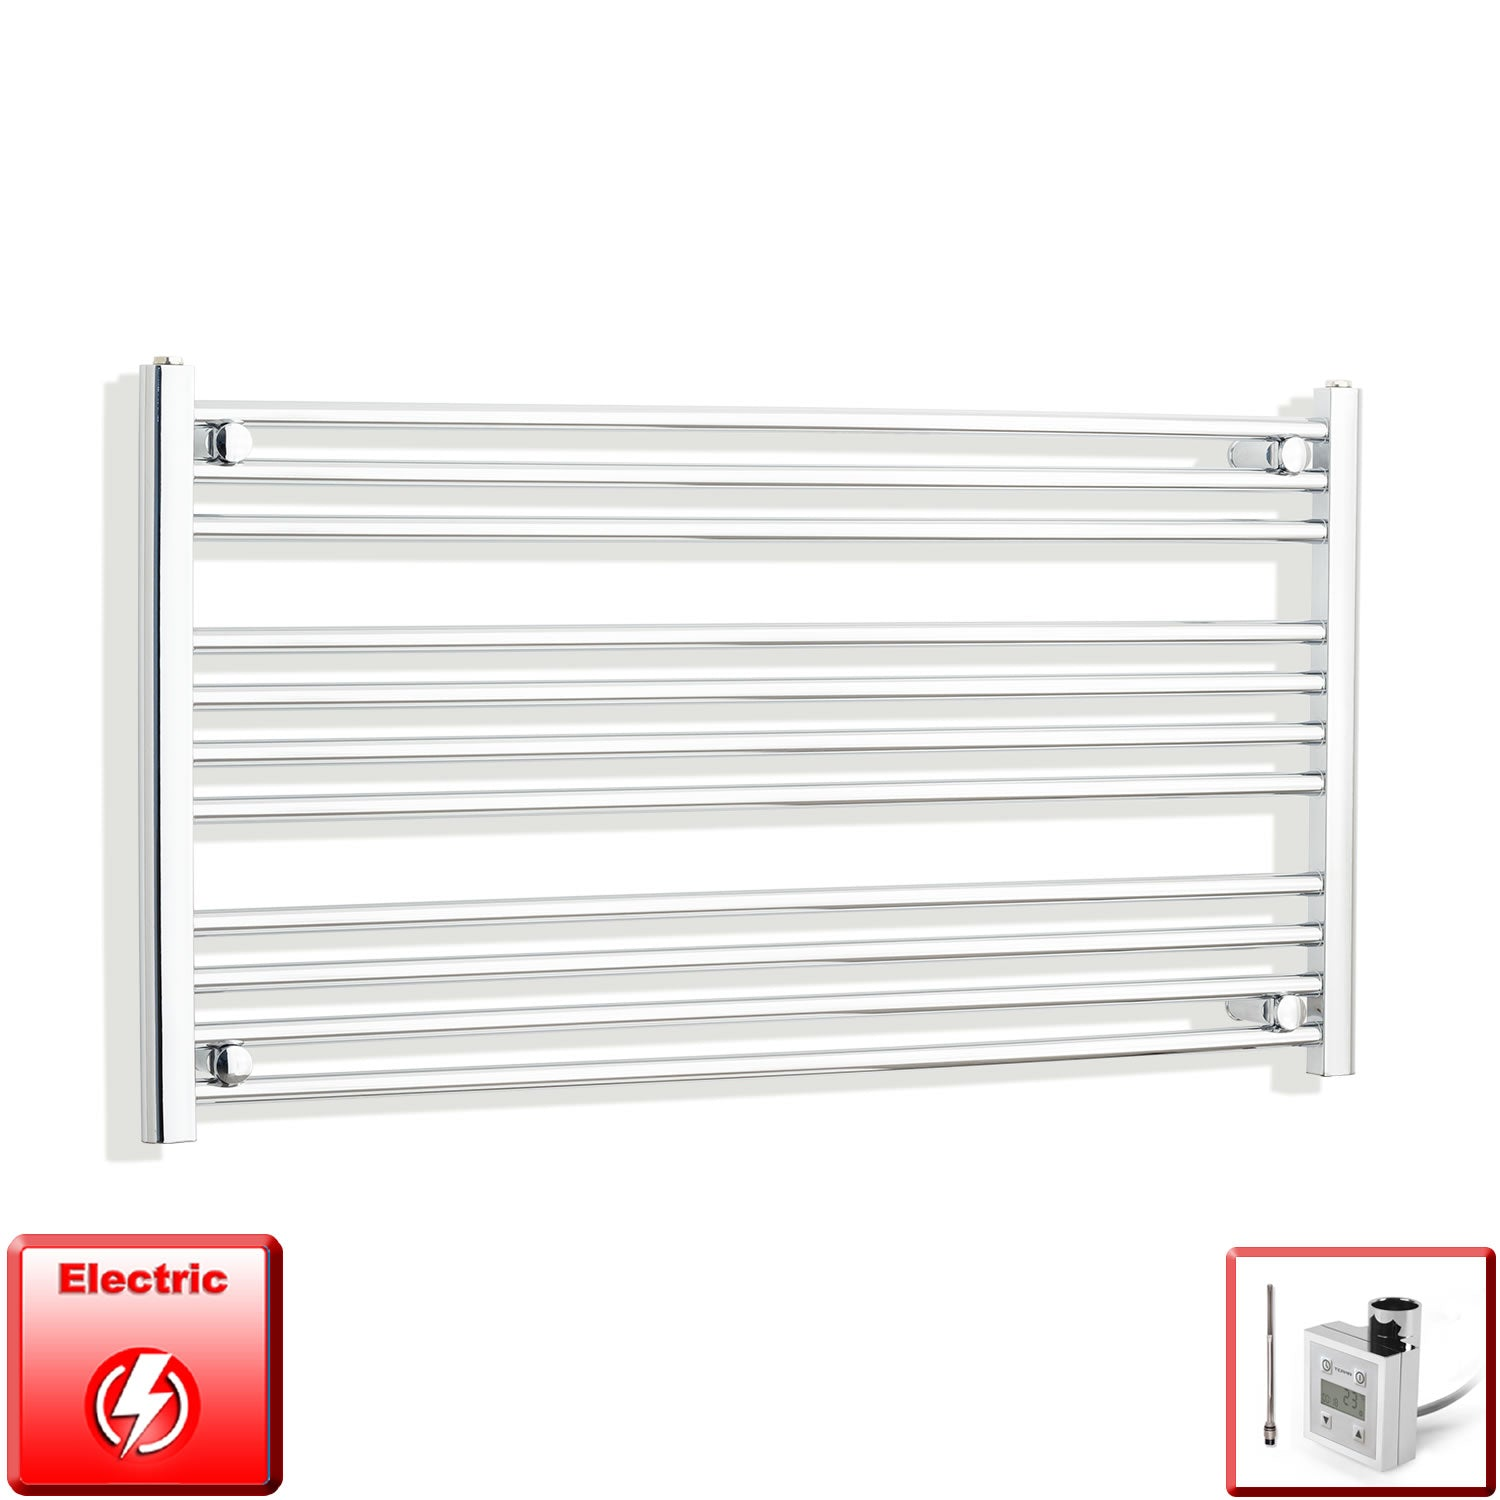 1300mm Wide 600mm High Flat Chrome Pre-Filled Electric Heated Towel Rail Radiator HTR,KTX-3 Thermostatic Element